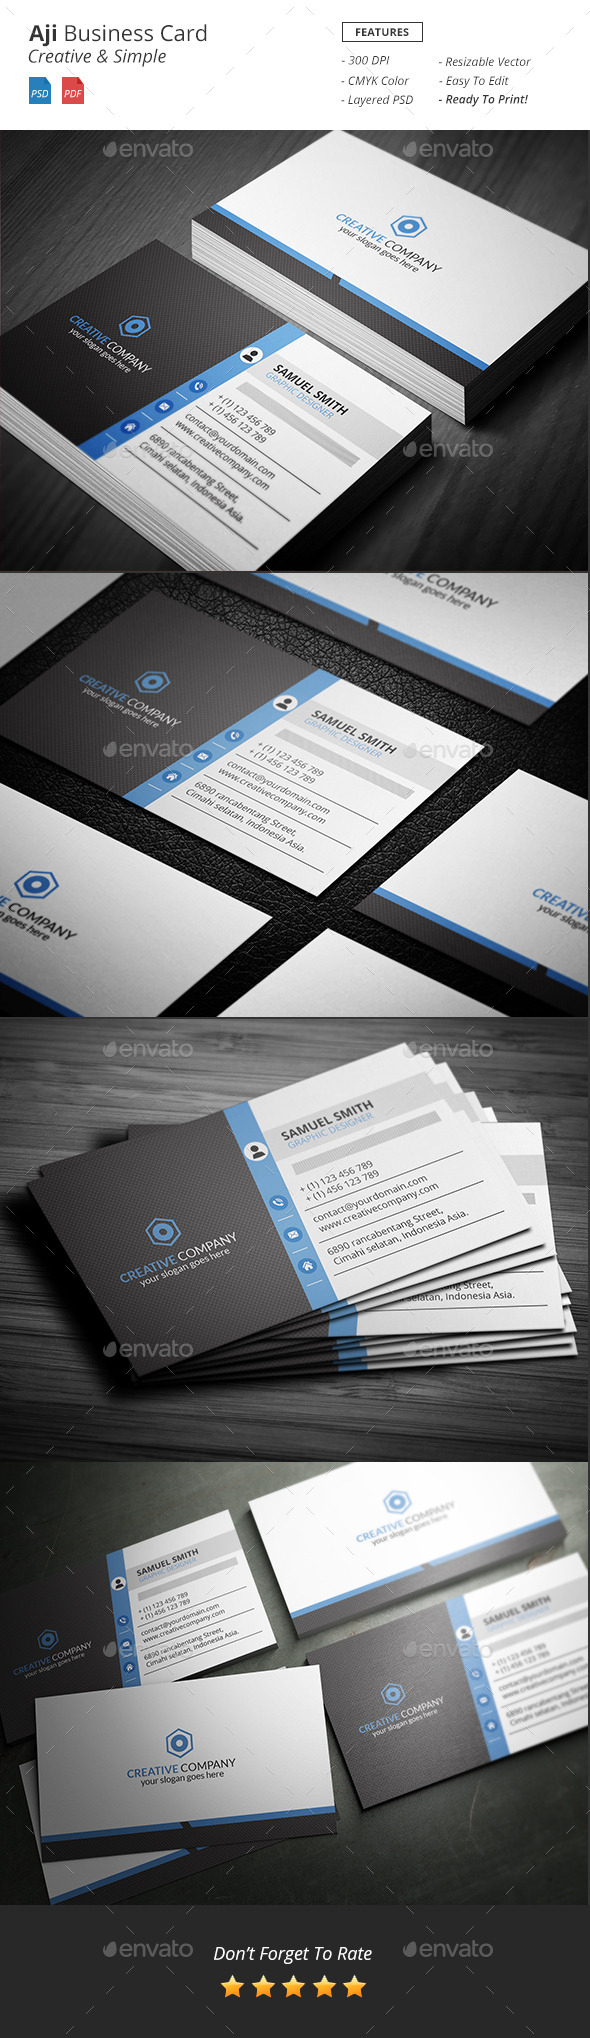 GraphicRiver Aji Corporate Business Card 11636024